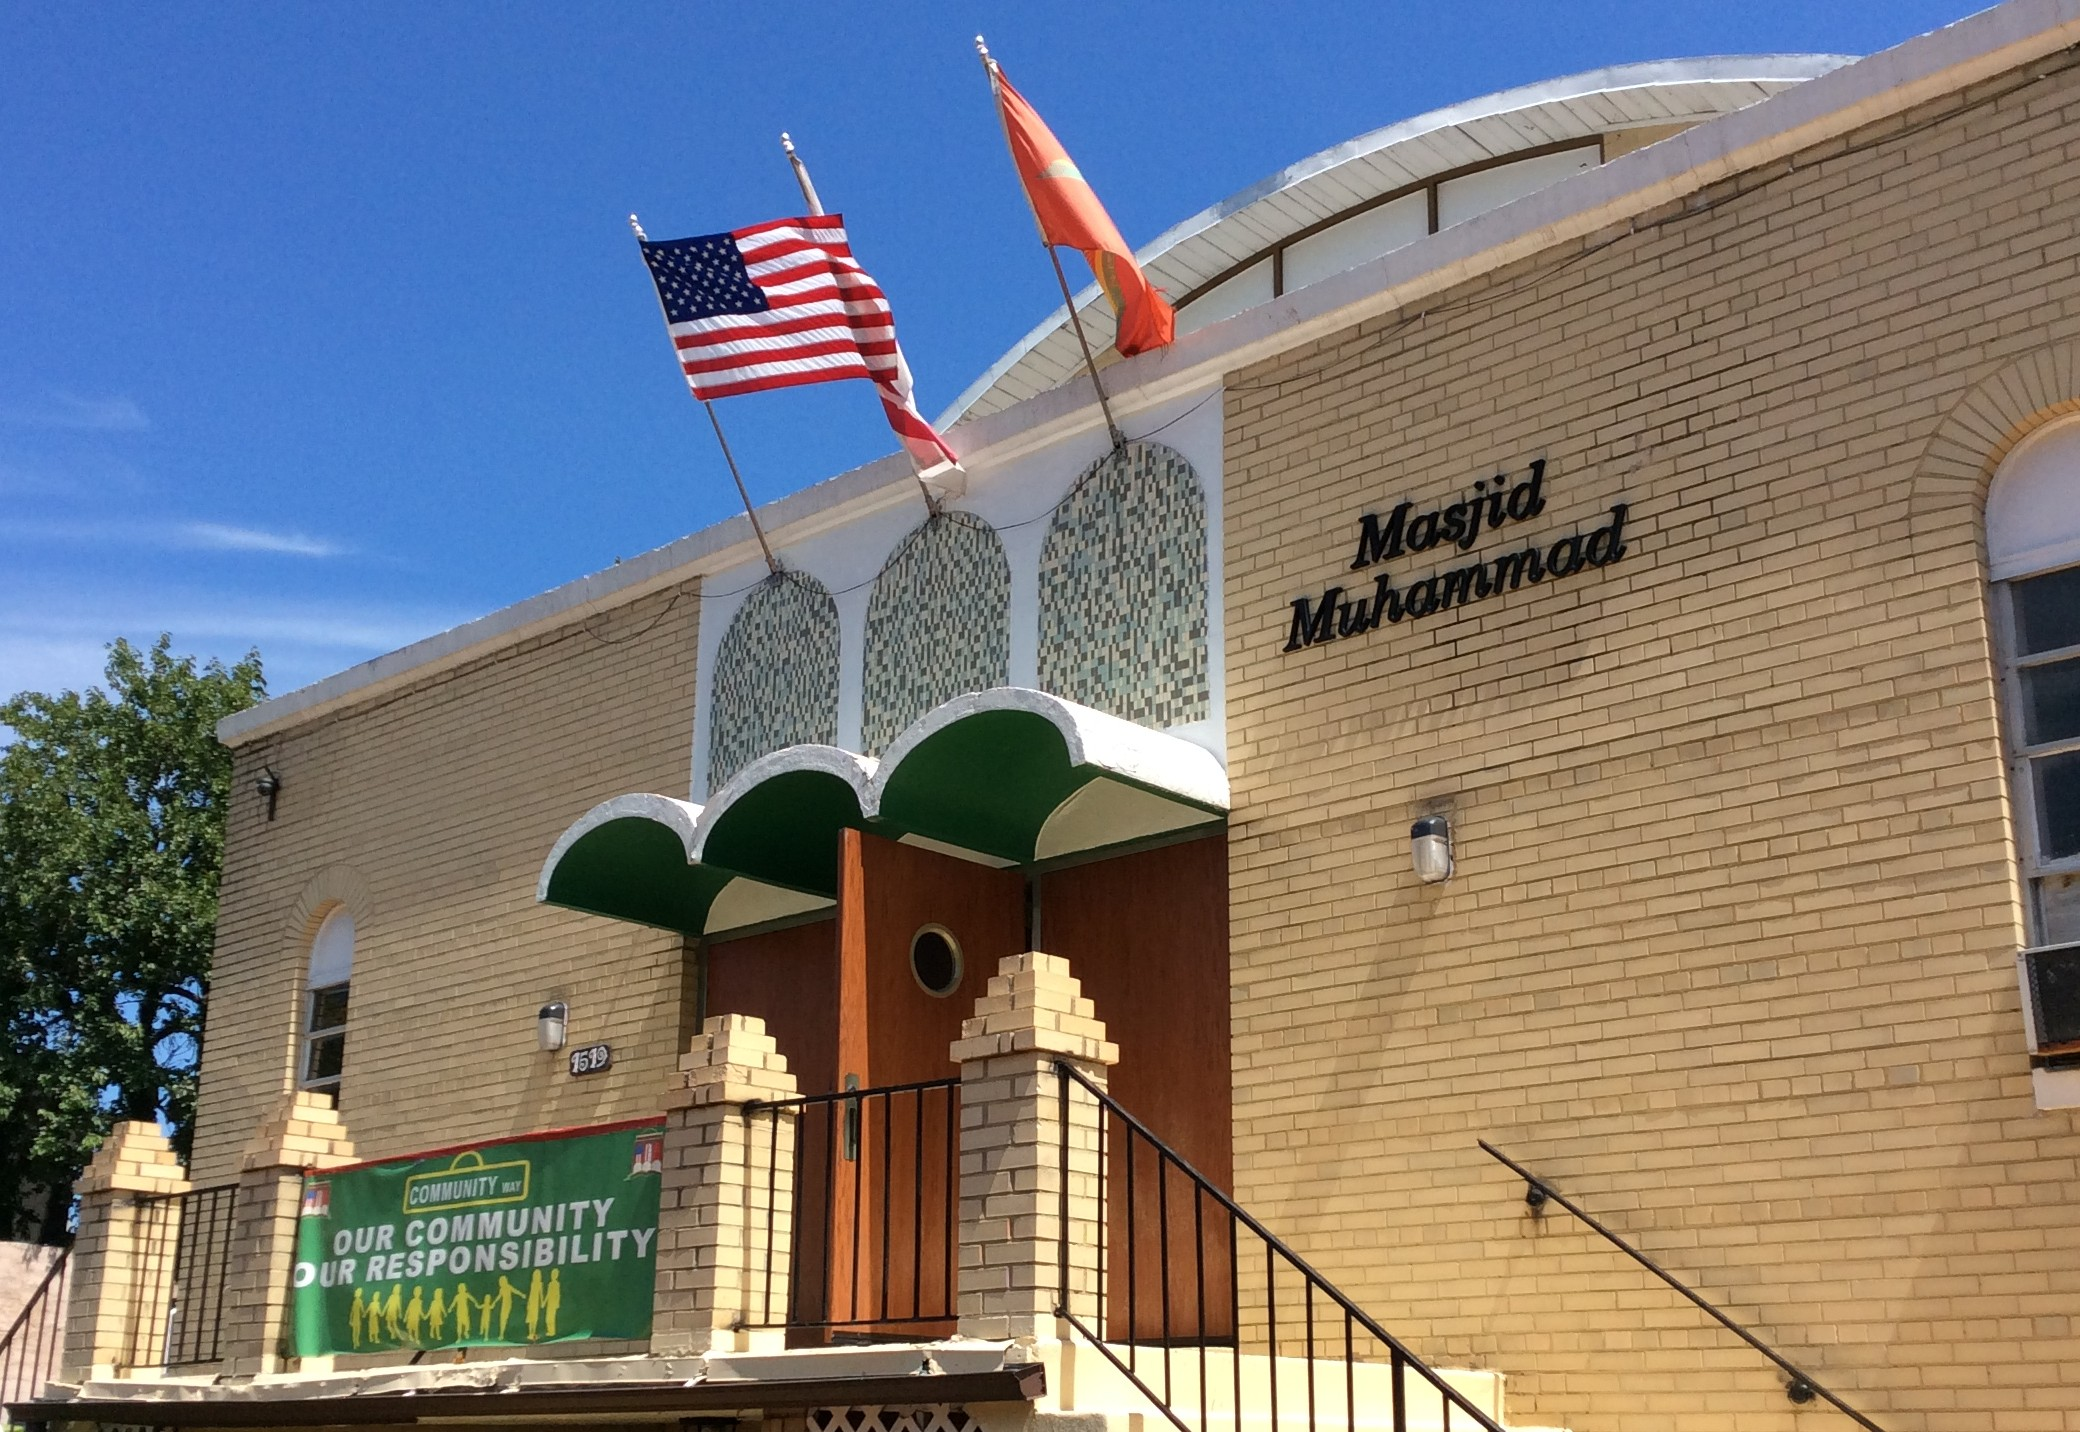 Photo Gallery: Religious Observance at Masjid Muhammad - Religion & Ethics NewsWeekly